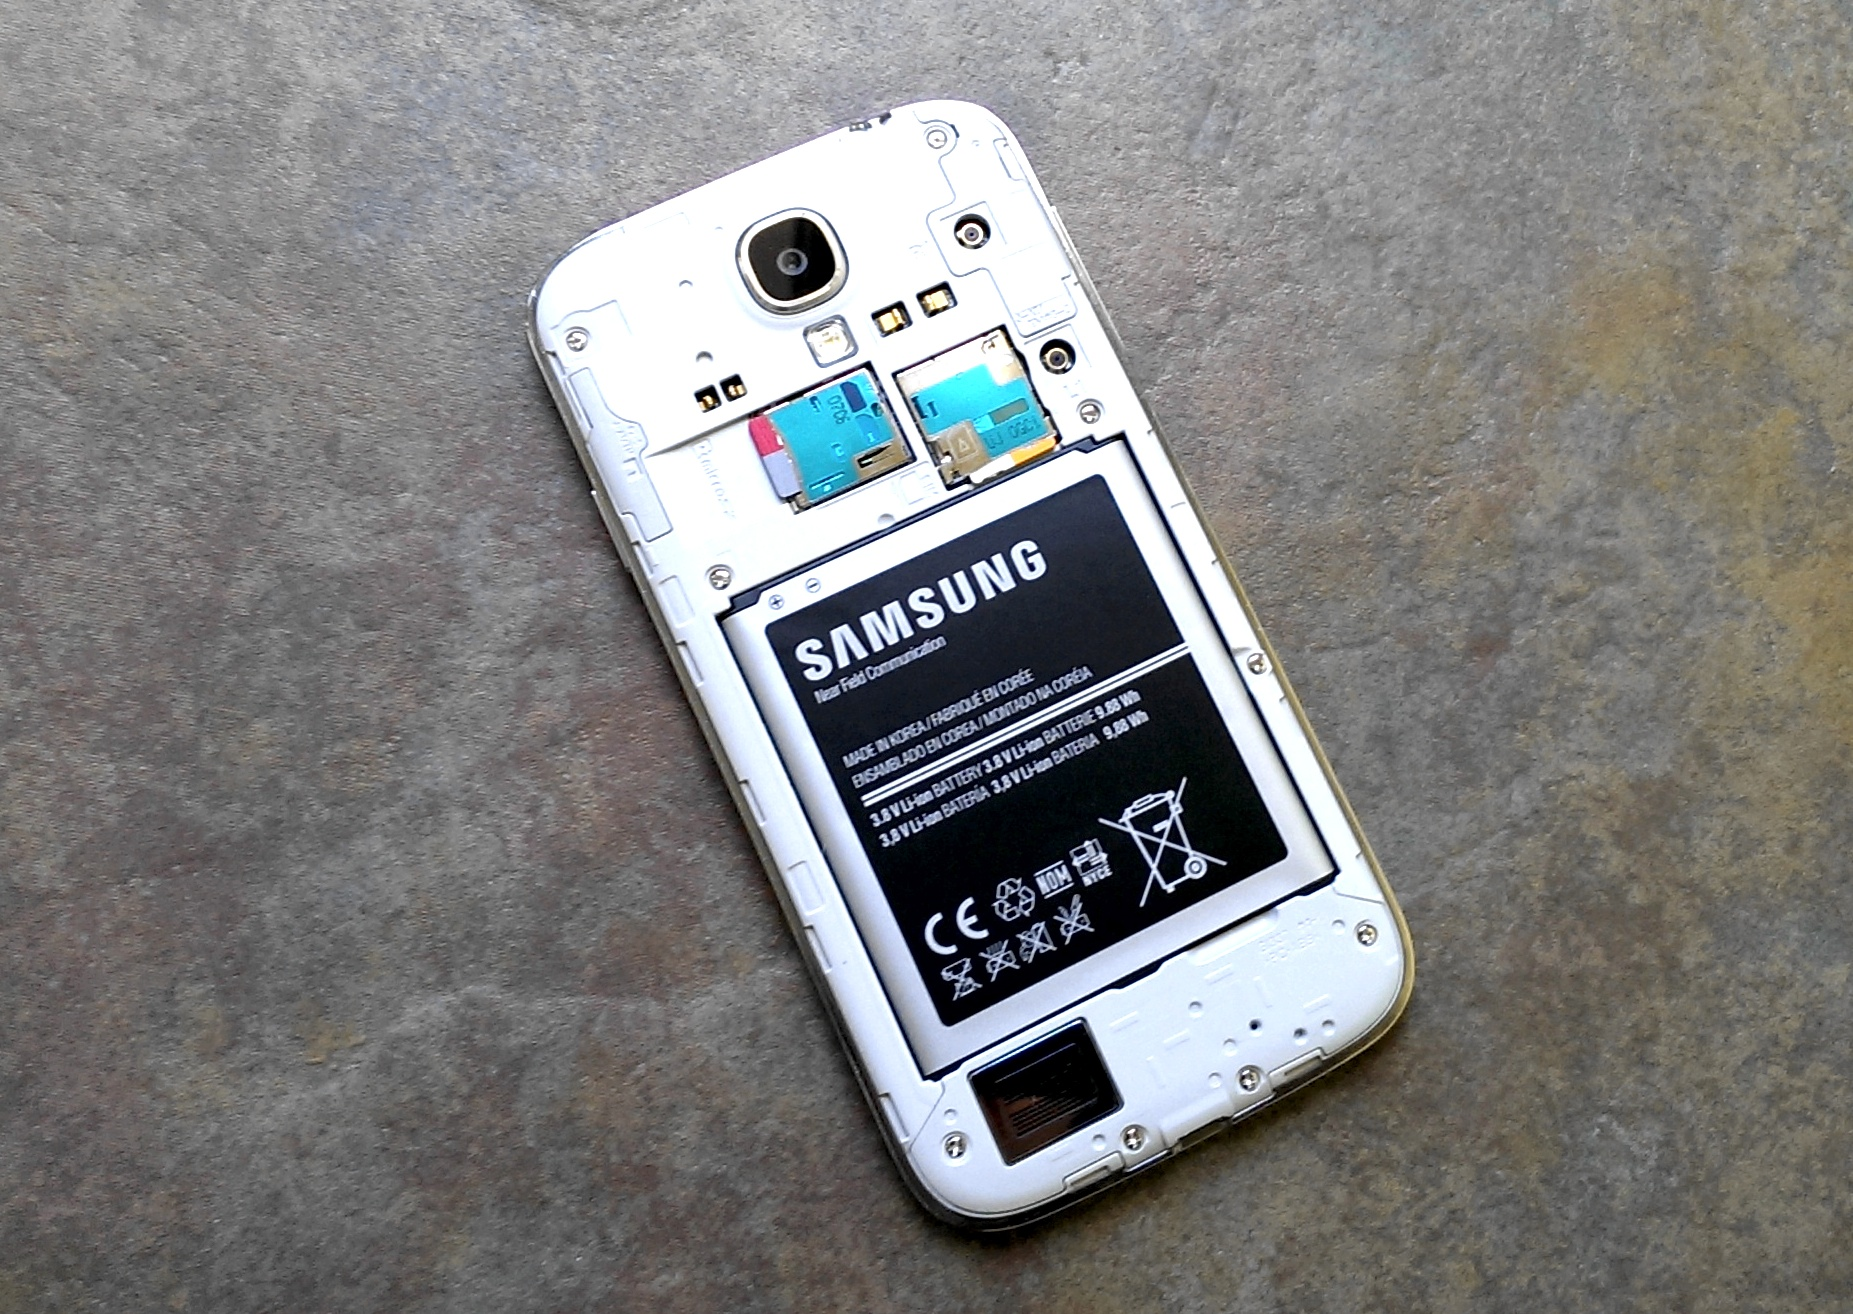 How to Get Better Samsung Galaxy S4 Battery Life